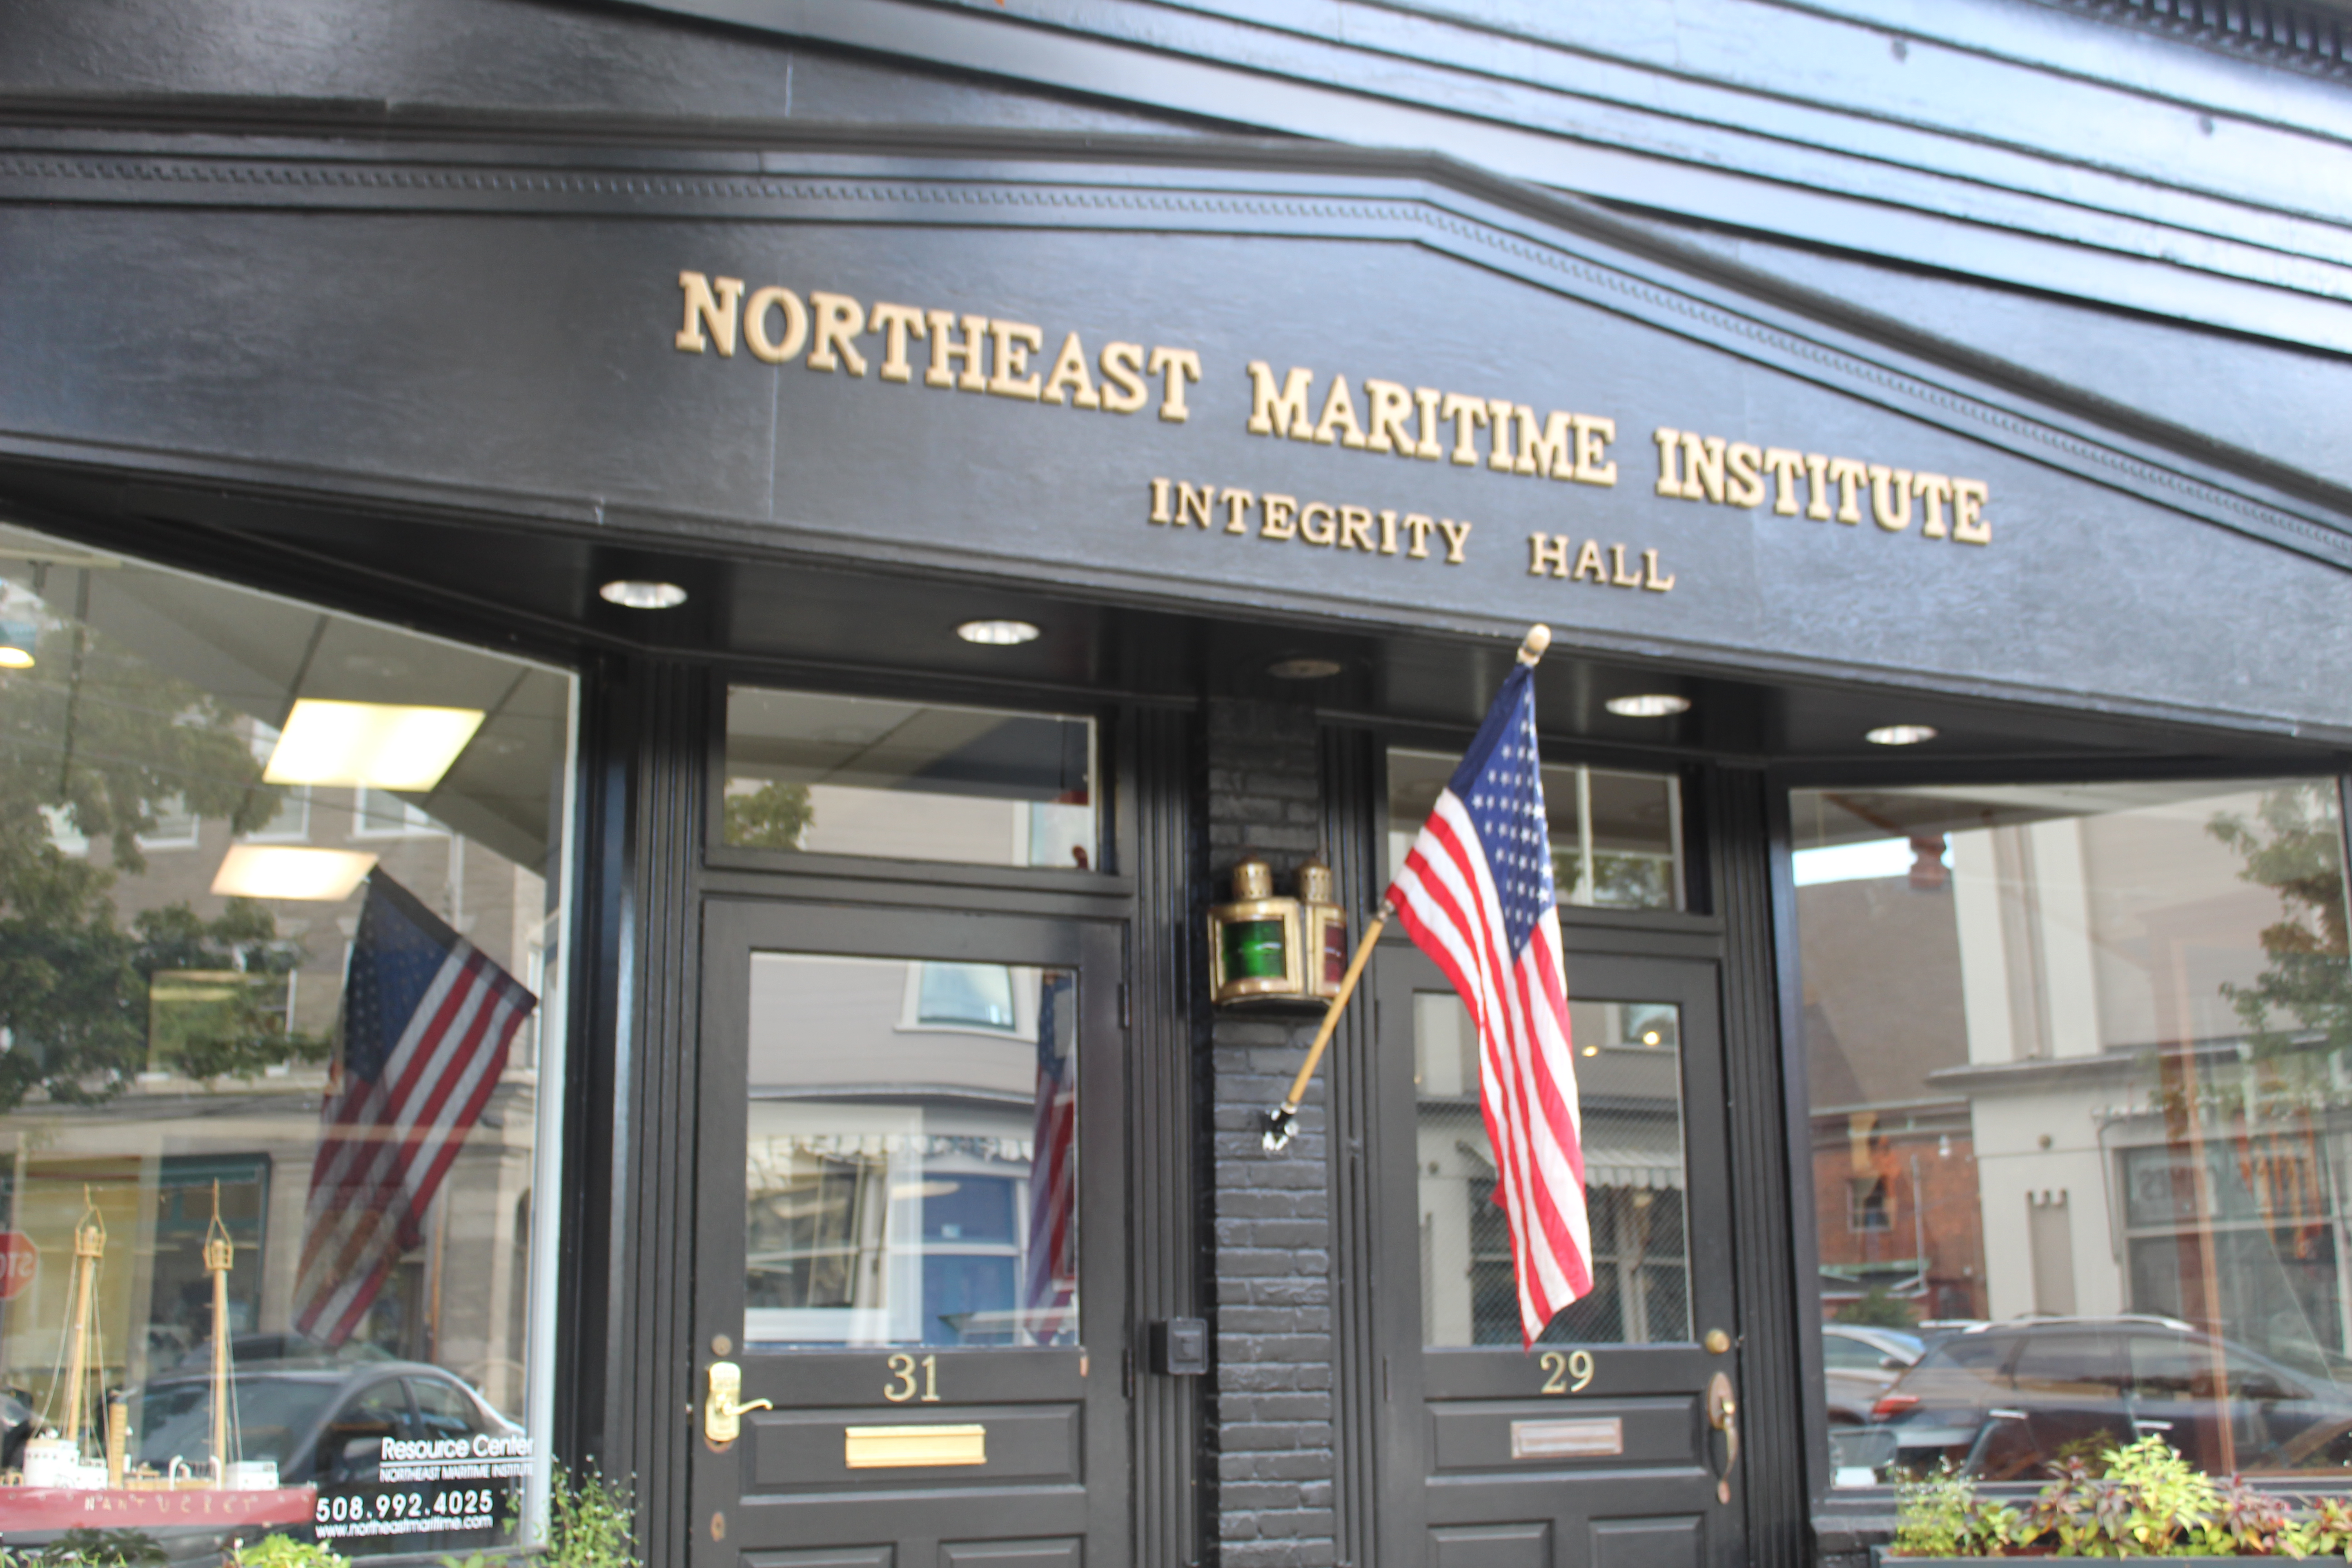 Northeast Maritime Institute | Open House Integrity Hall